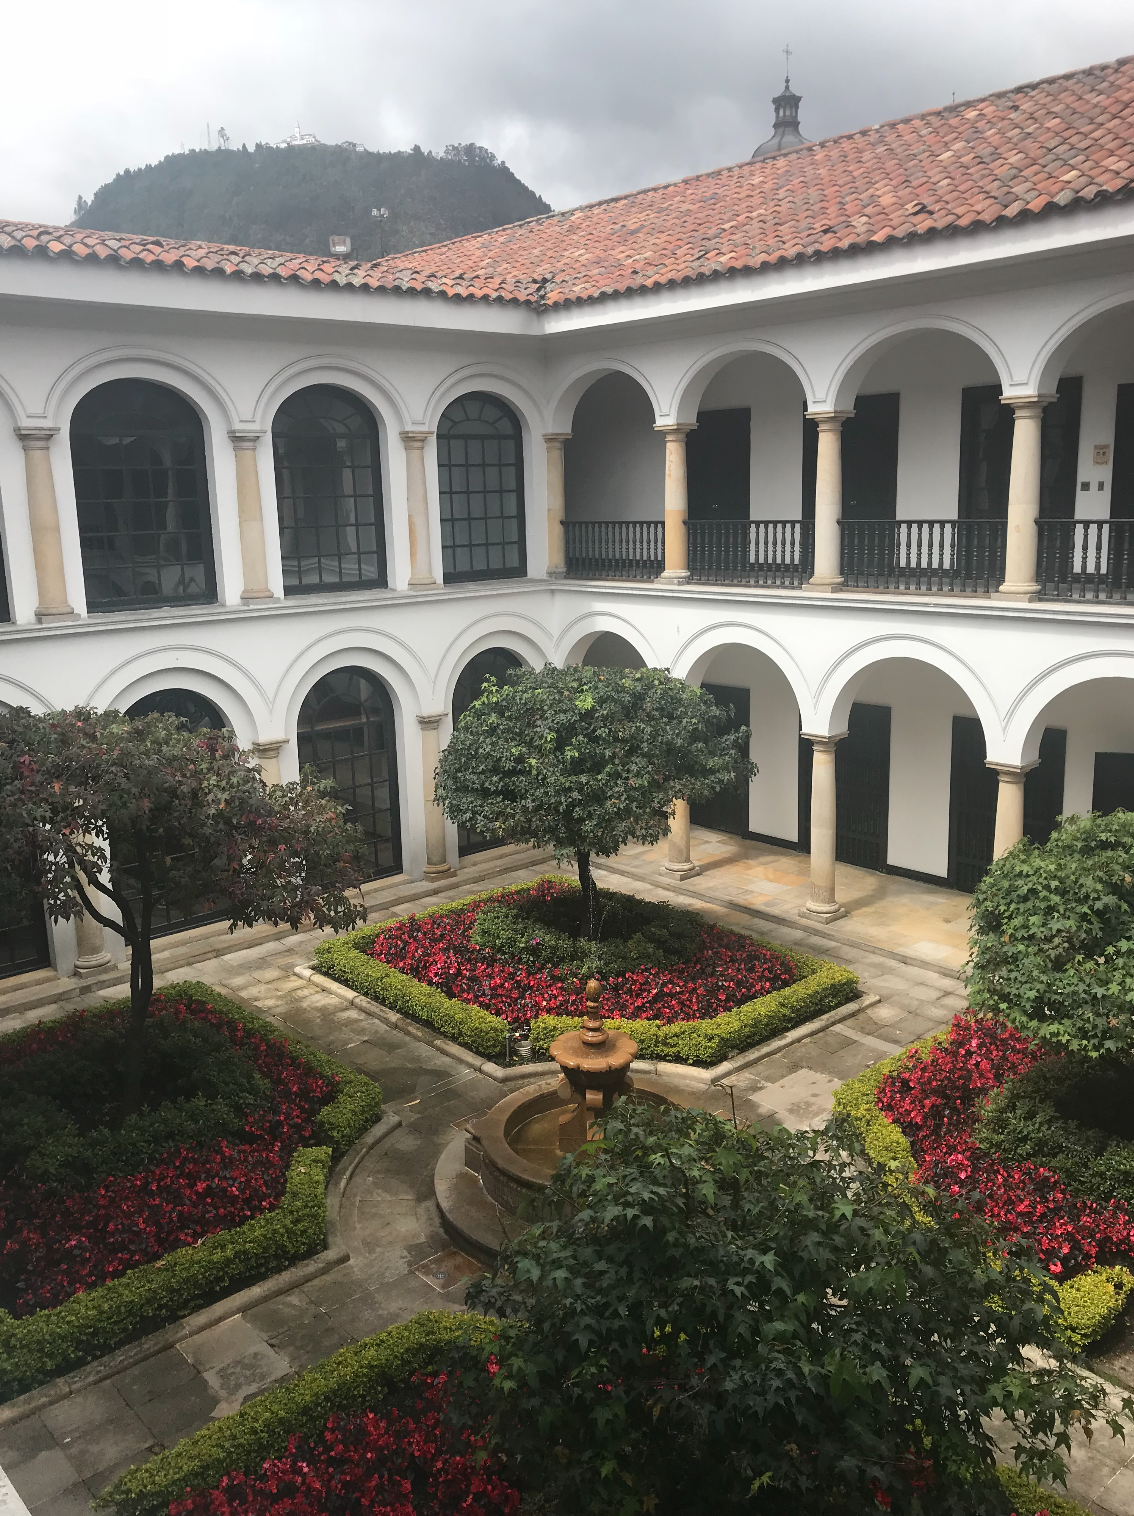 Museo de Botero courtyard best of colombia's museum exhibits